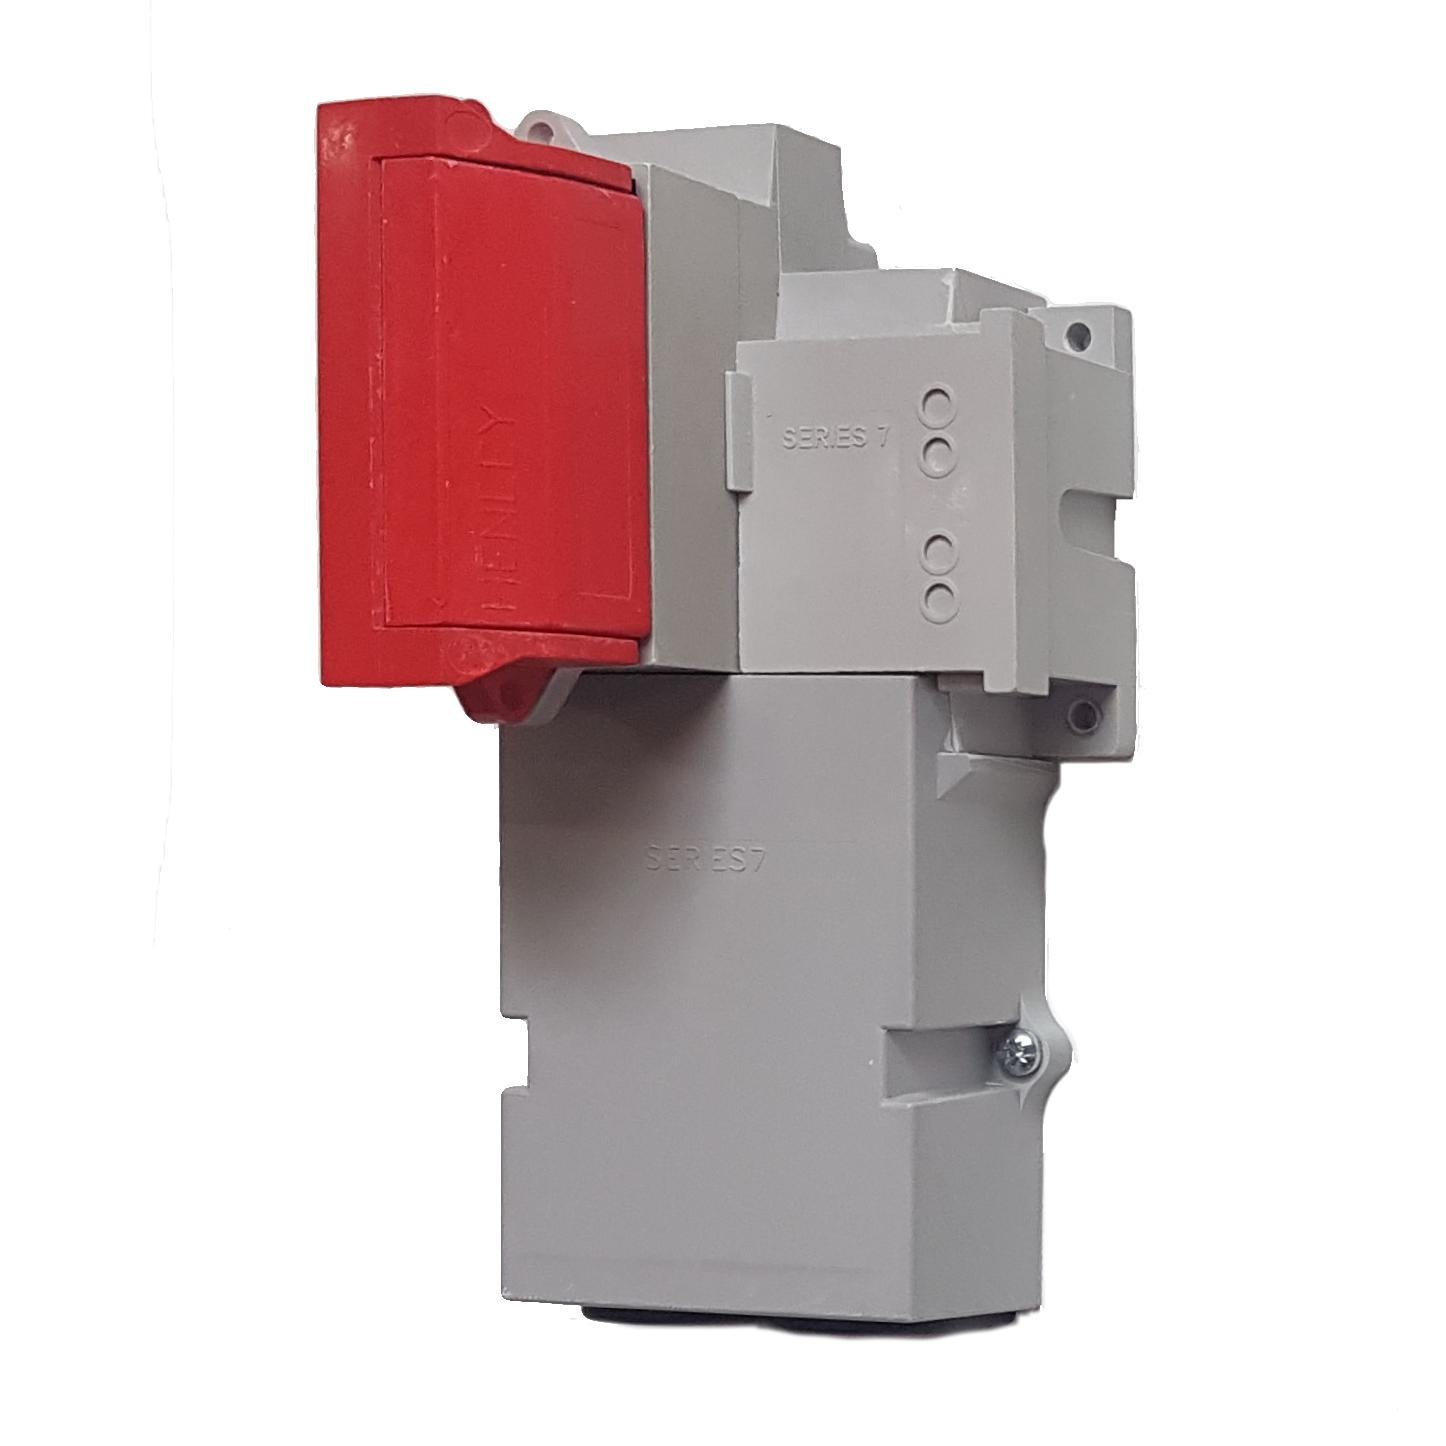 WT Henley - Series 7 Single Phase House Service Cut Out (Combined Neutral & Earth) - Solid Link (Red)